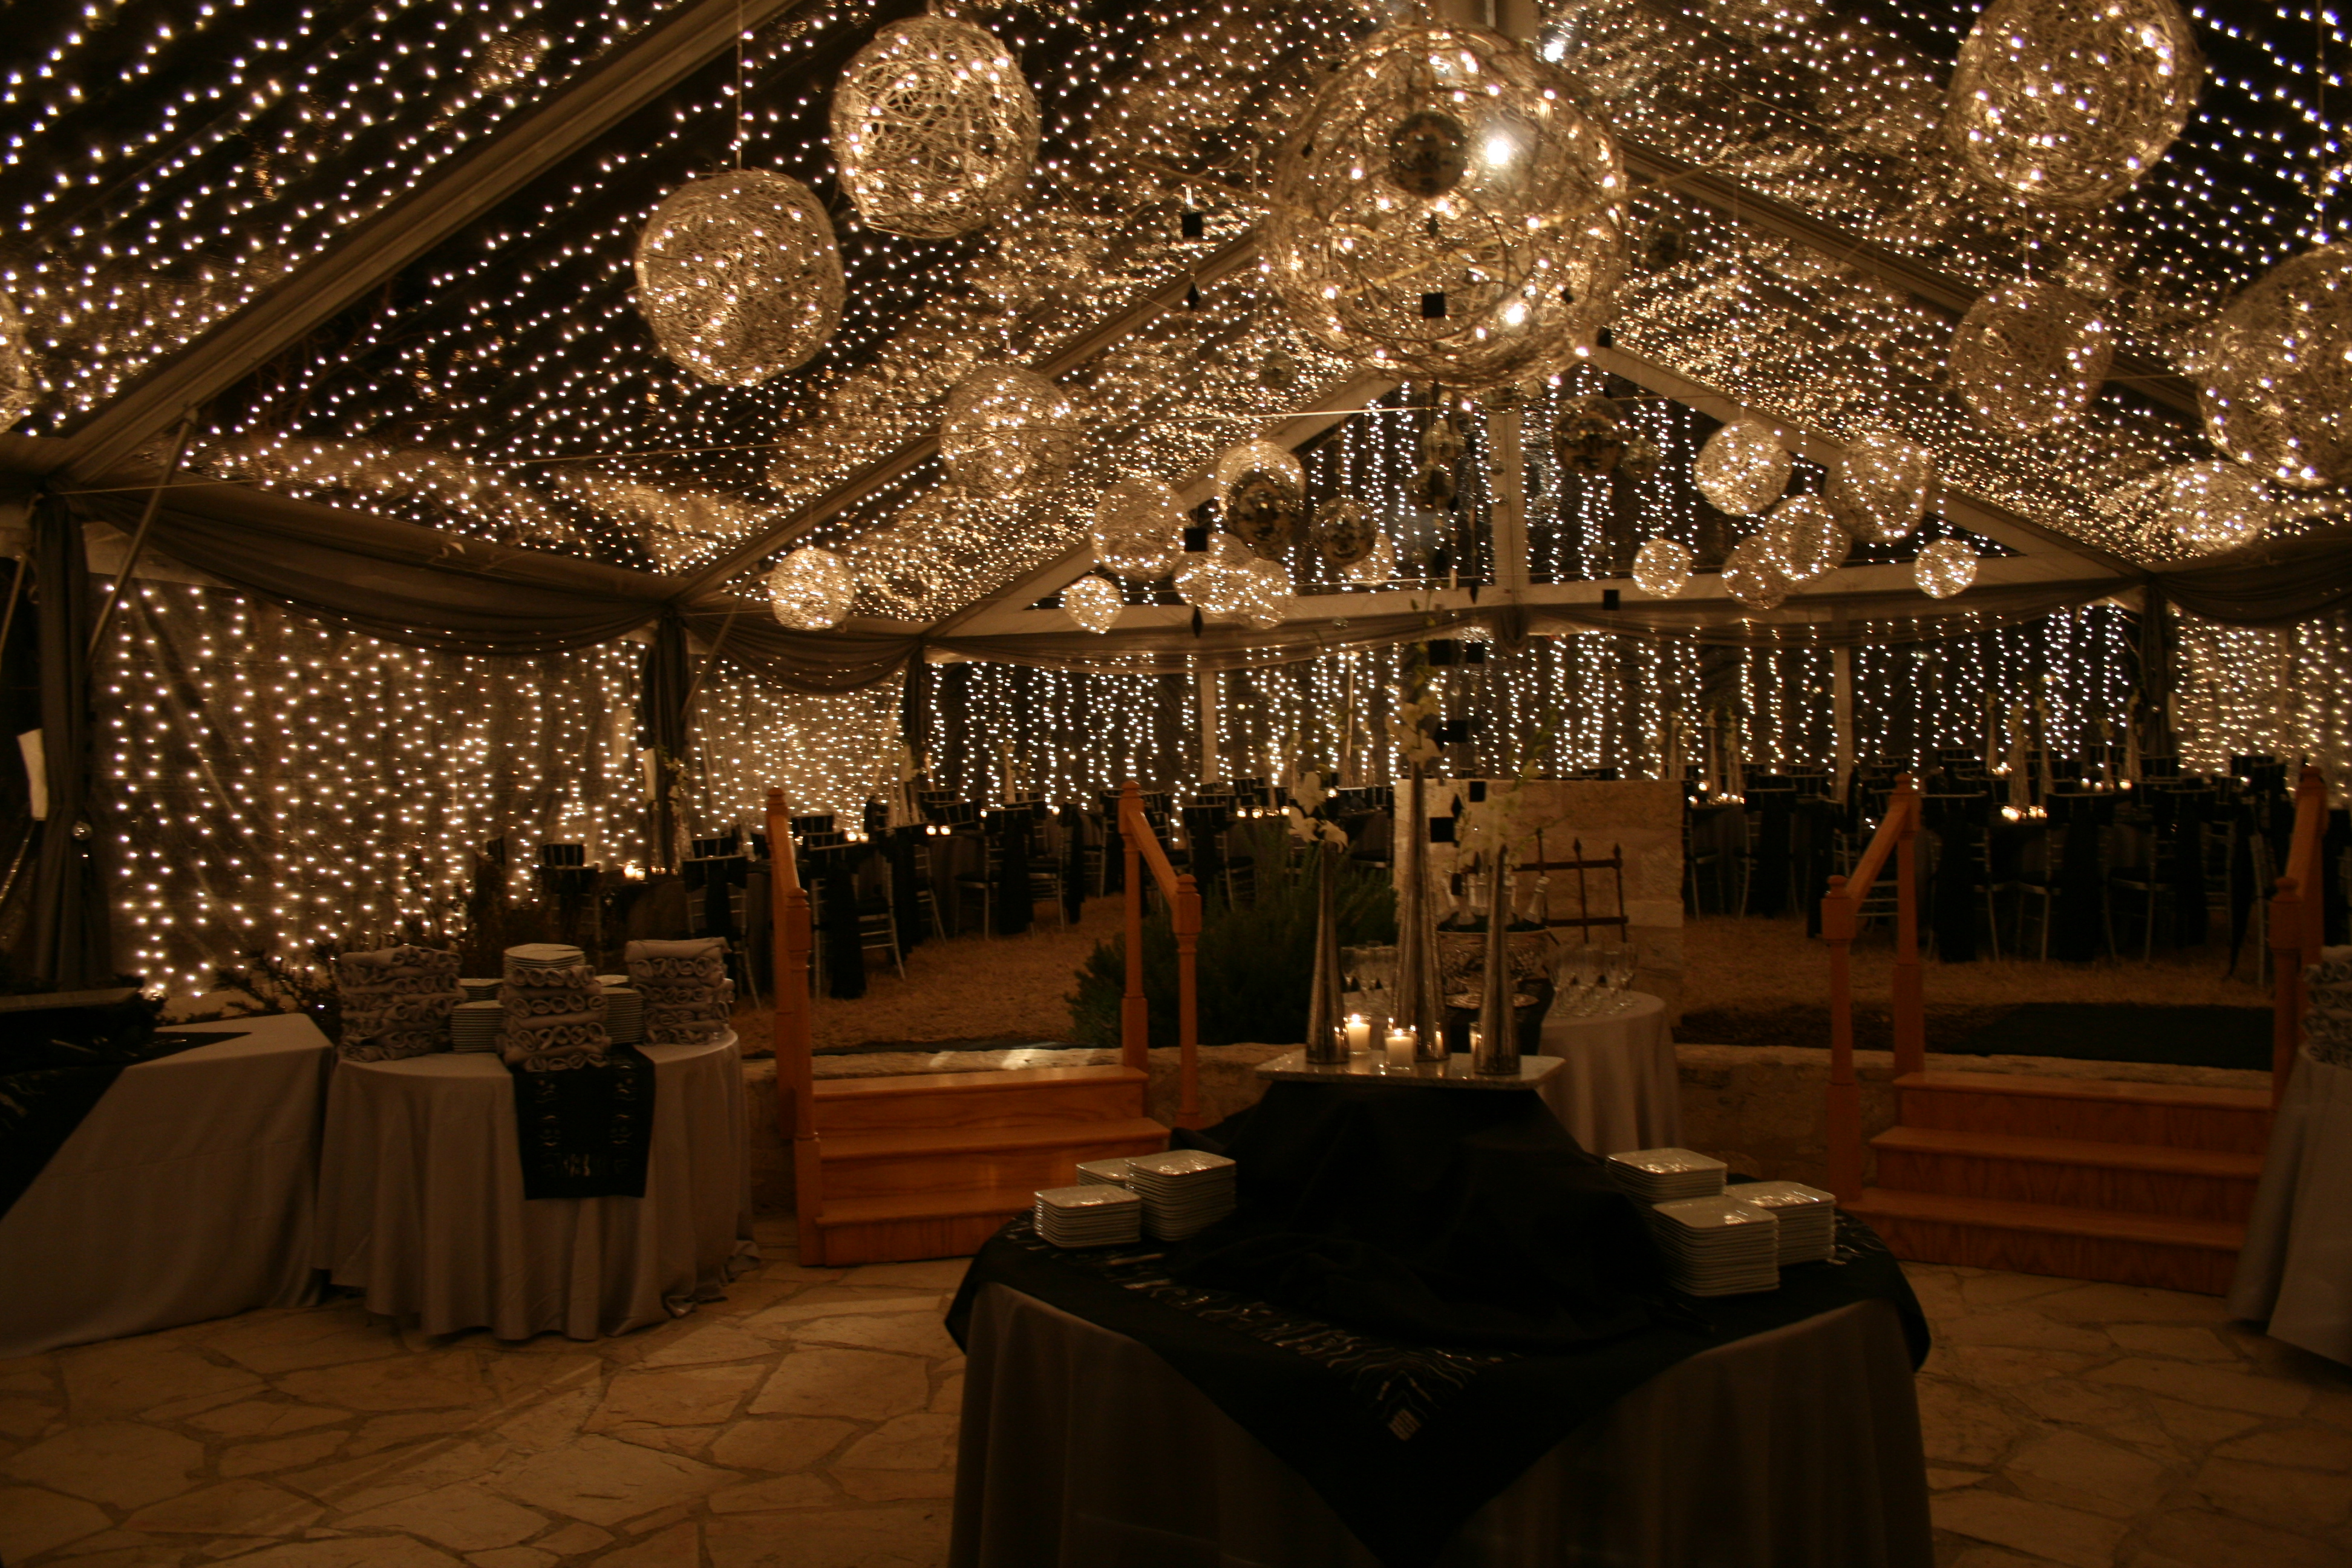 we by ceiling drapes wedding each flagging hang events tape decoration photo decorating for other ribbon use with to jessadrian are how instead